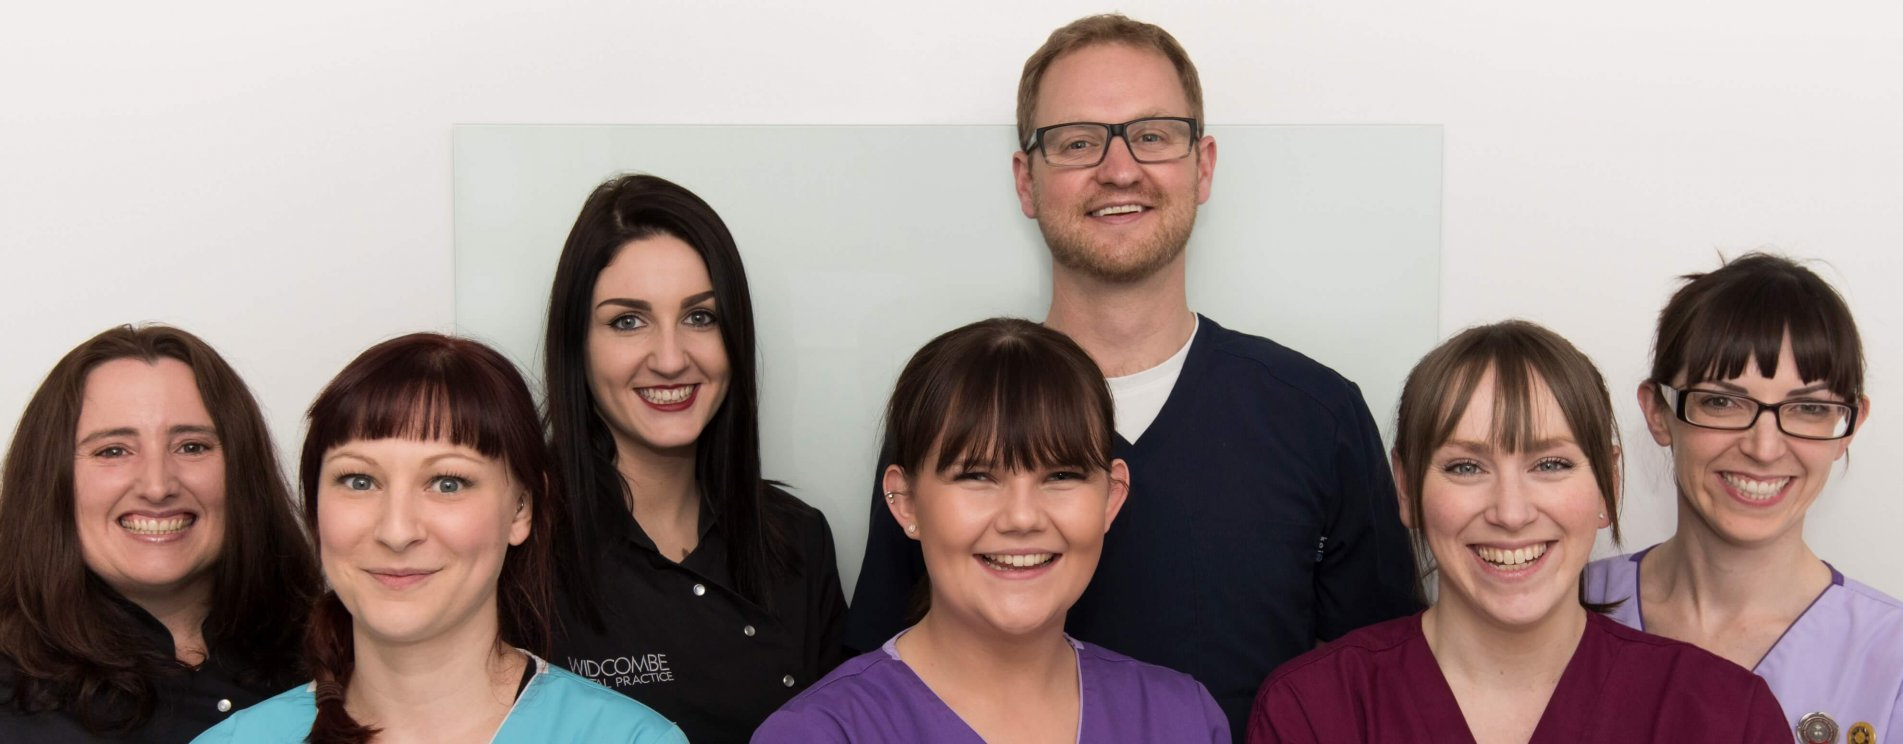 widcombe dental practice in bath